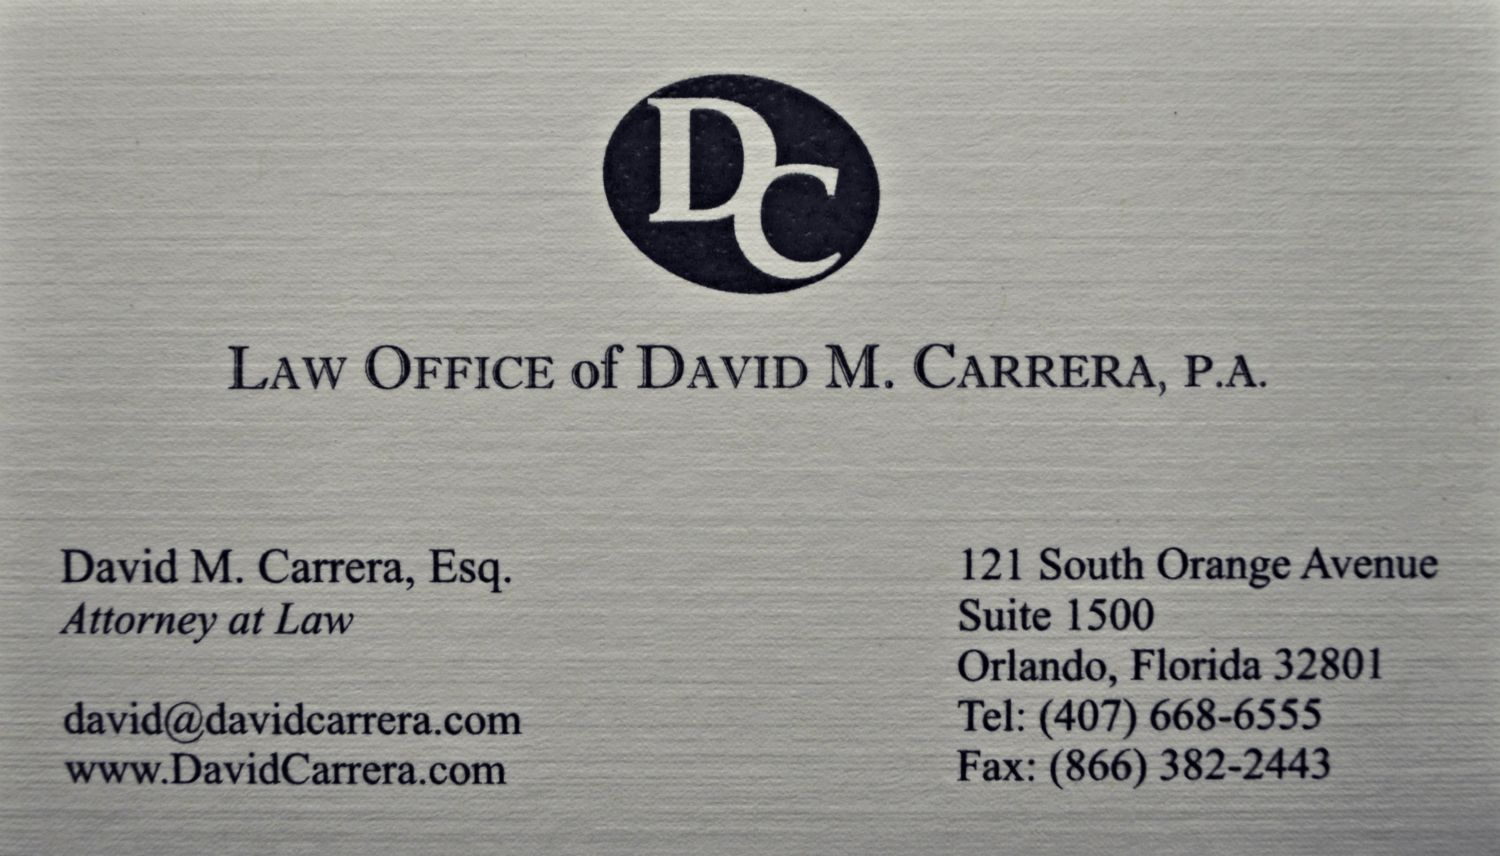 A good business card to help clients get in touch with this solo law a good business card to help clients get in touch with this solo law firm printer perfect printing colourmoves